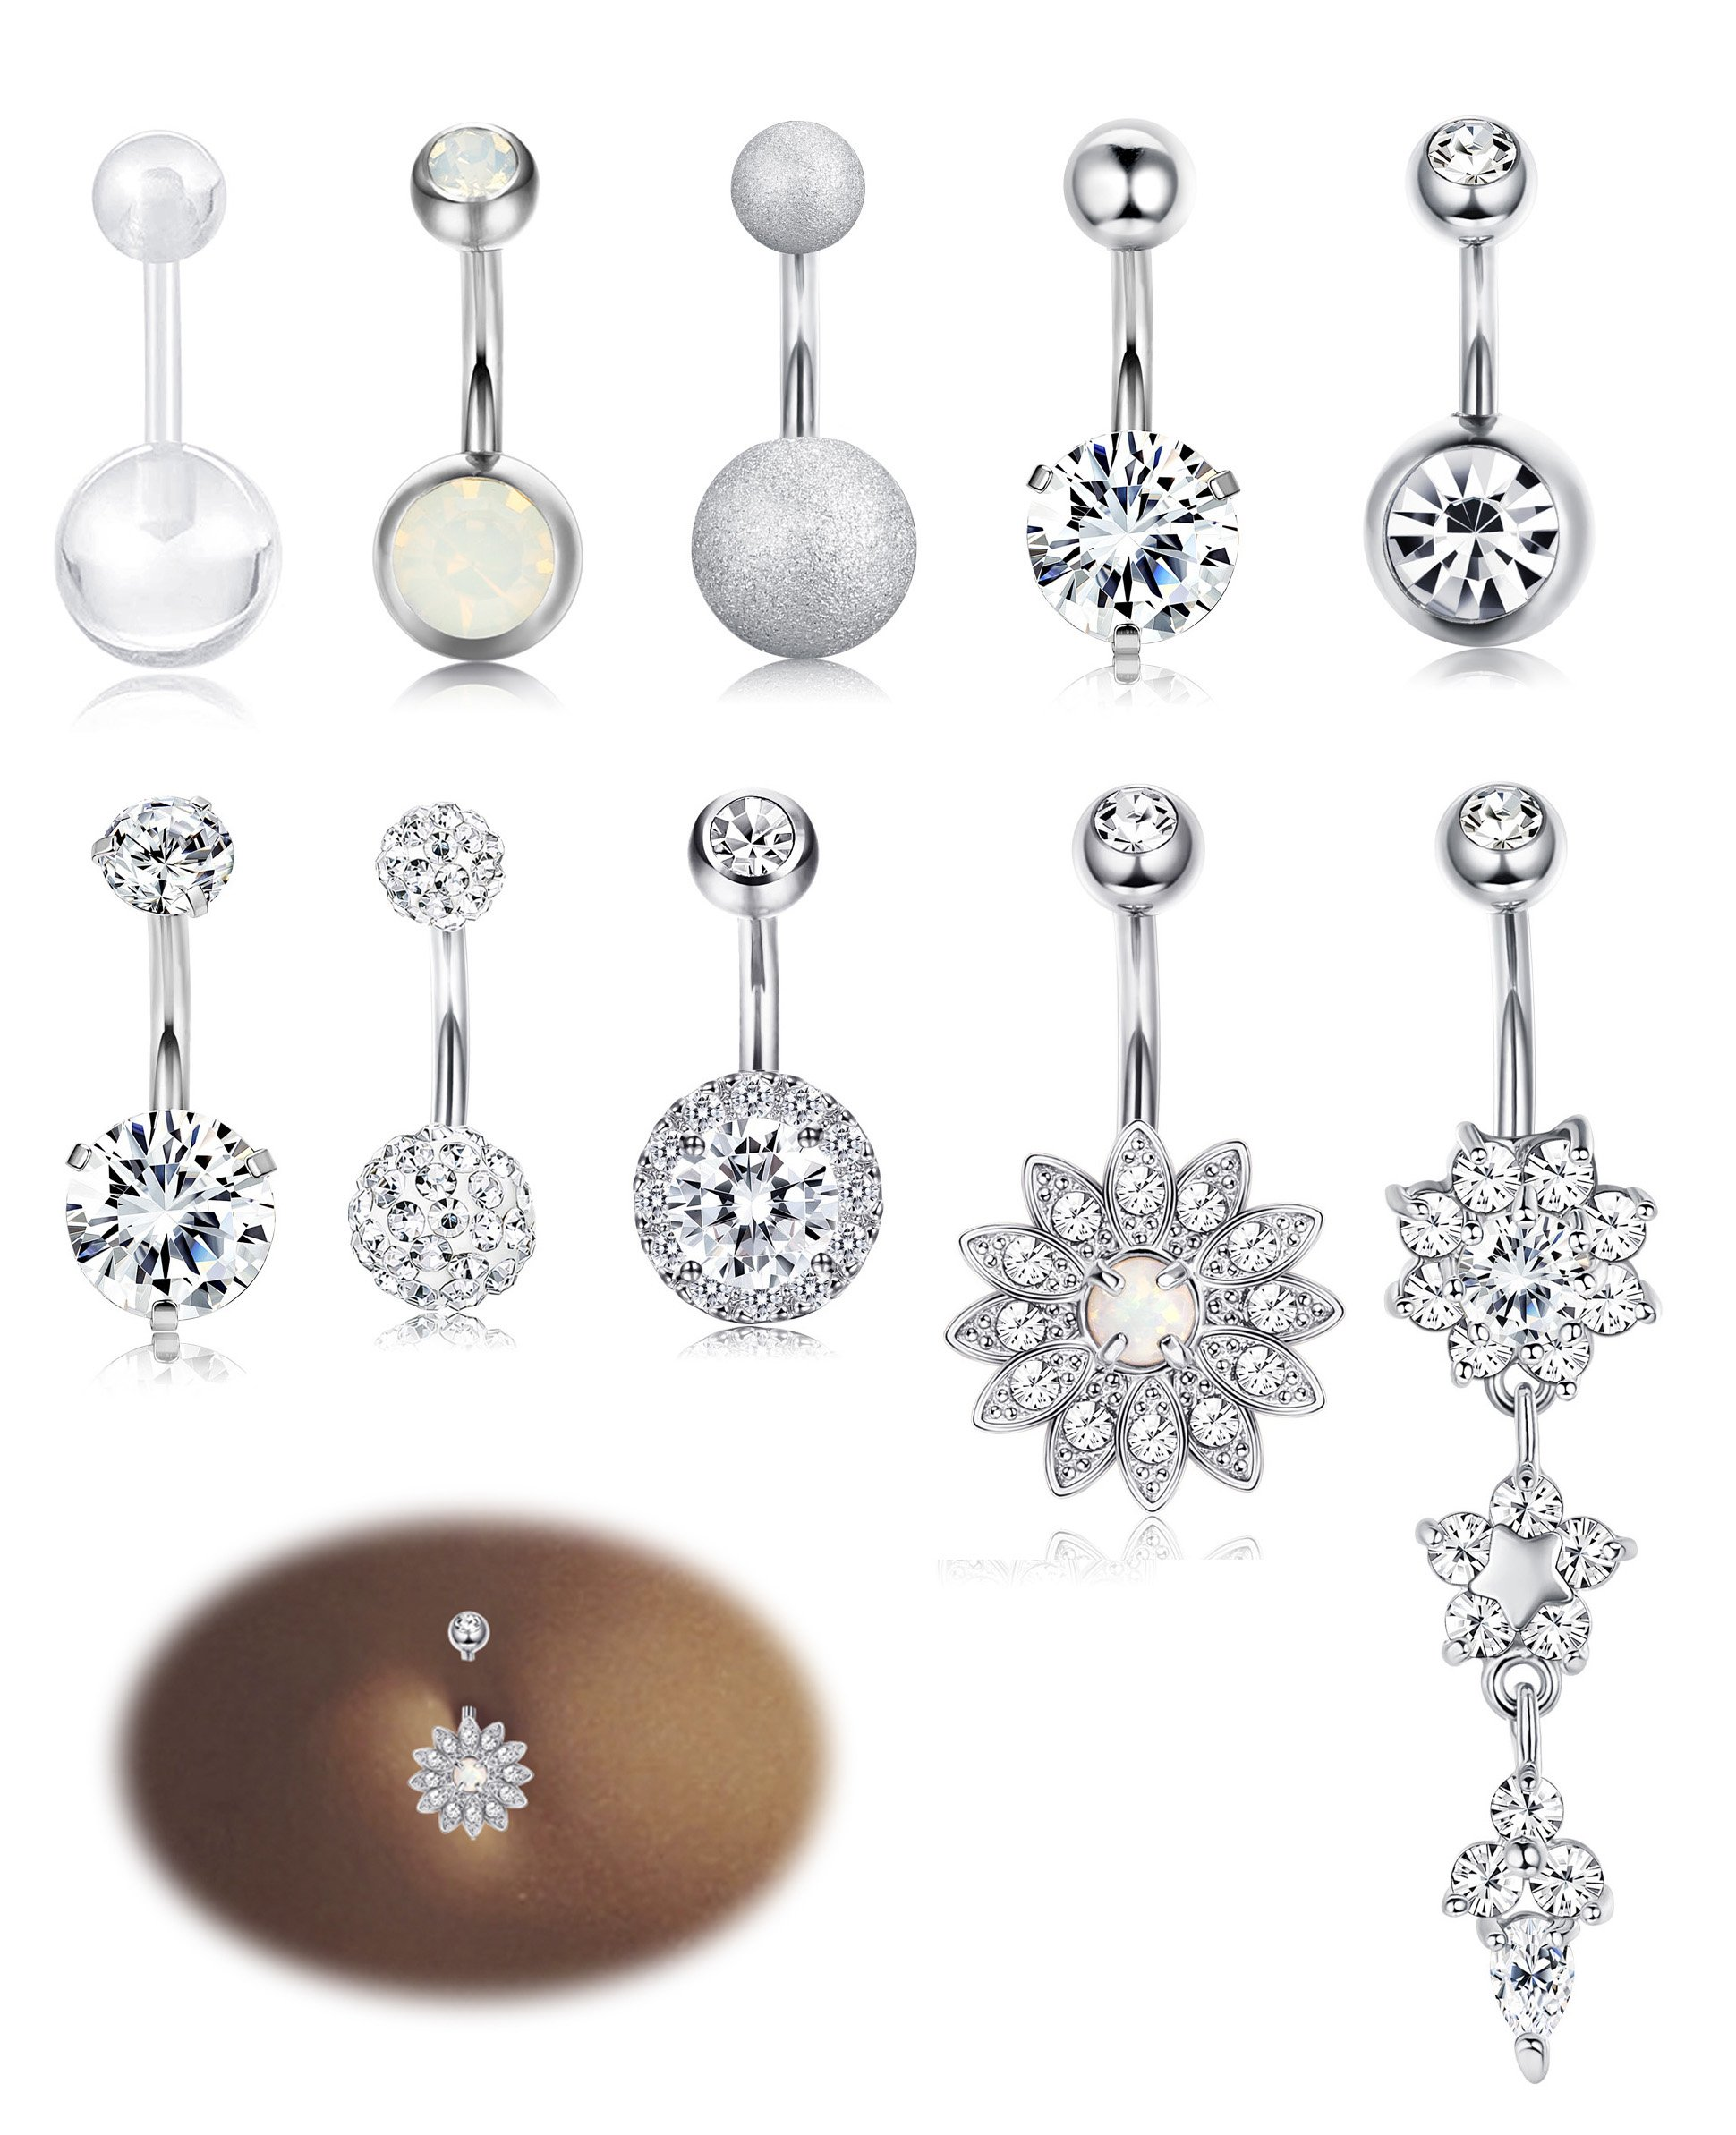 Milacolato 10PCS Stainless Steel Belly Button Rings for Womens Girls Navel Rings Barbell Dangle Acrylic CZ Body Piercing Jewelry White